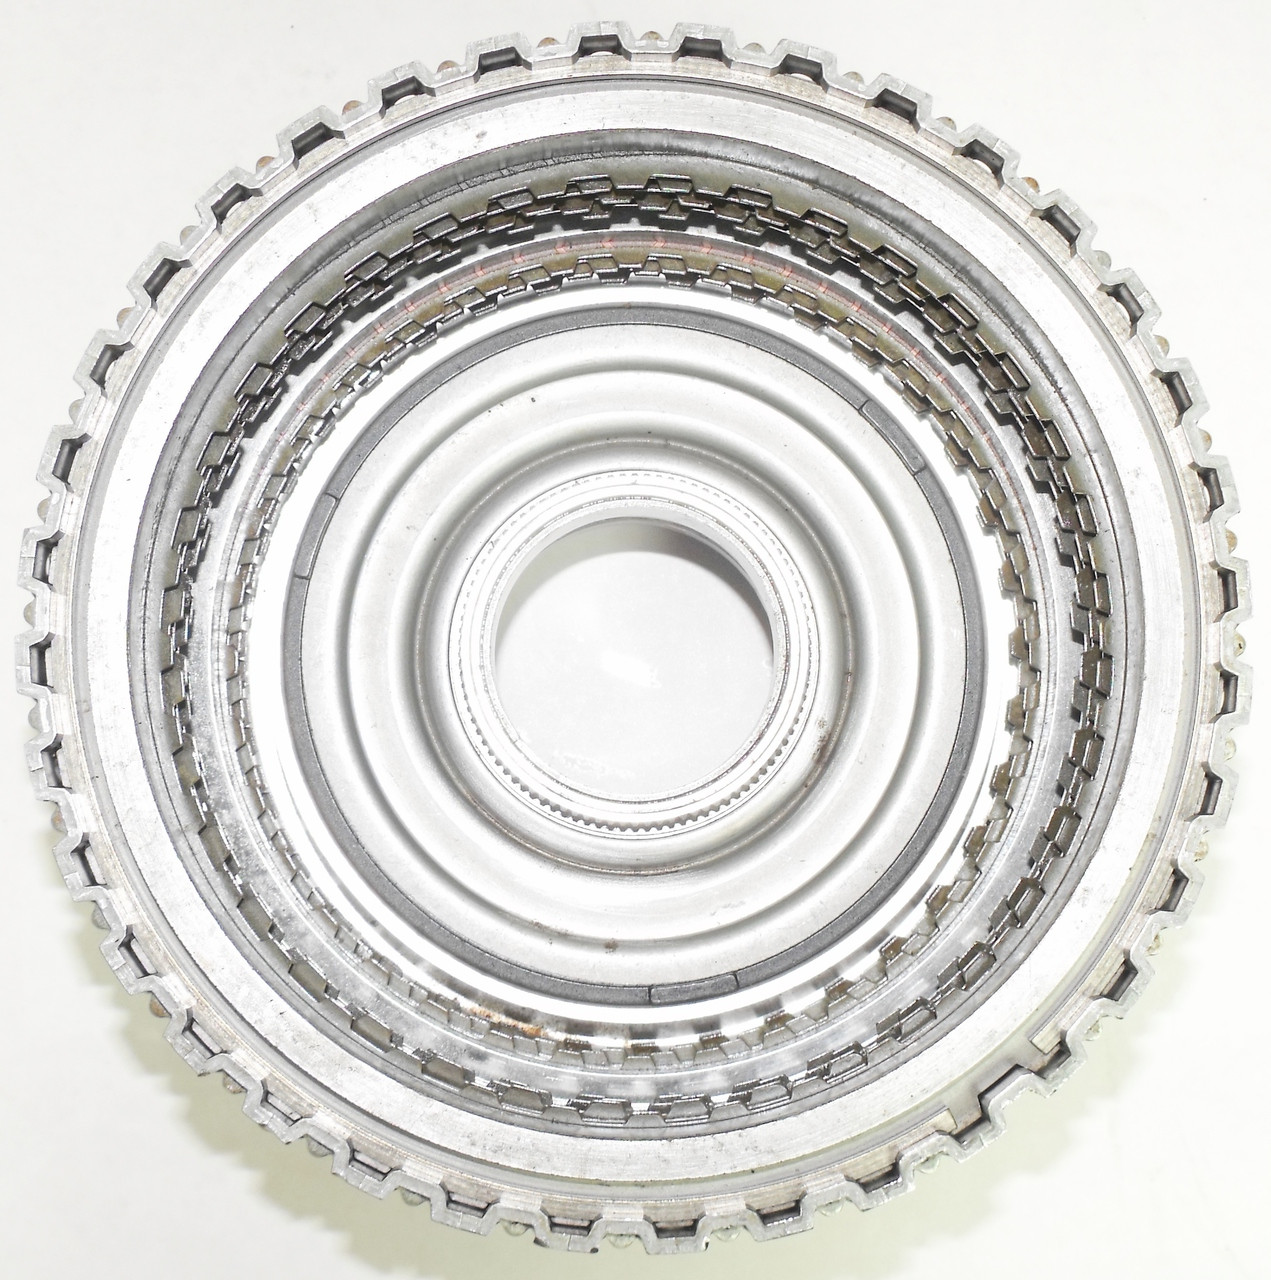 6L90E Forward & Direct Drum Assembly (2007-UP) Loaded